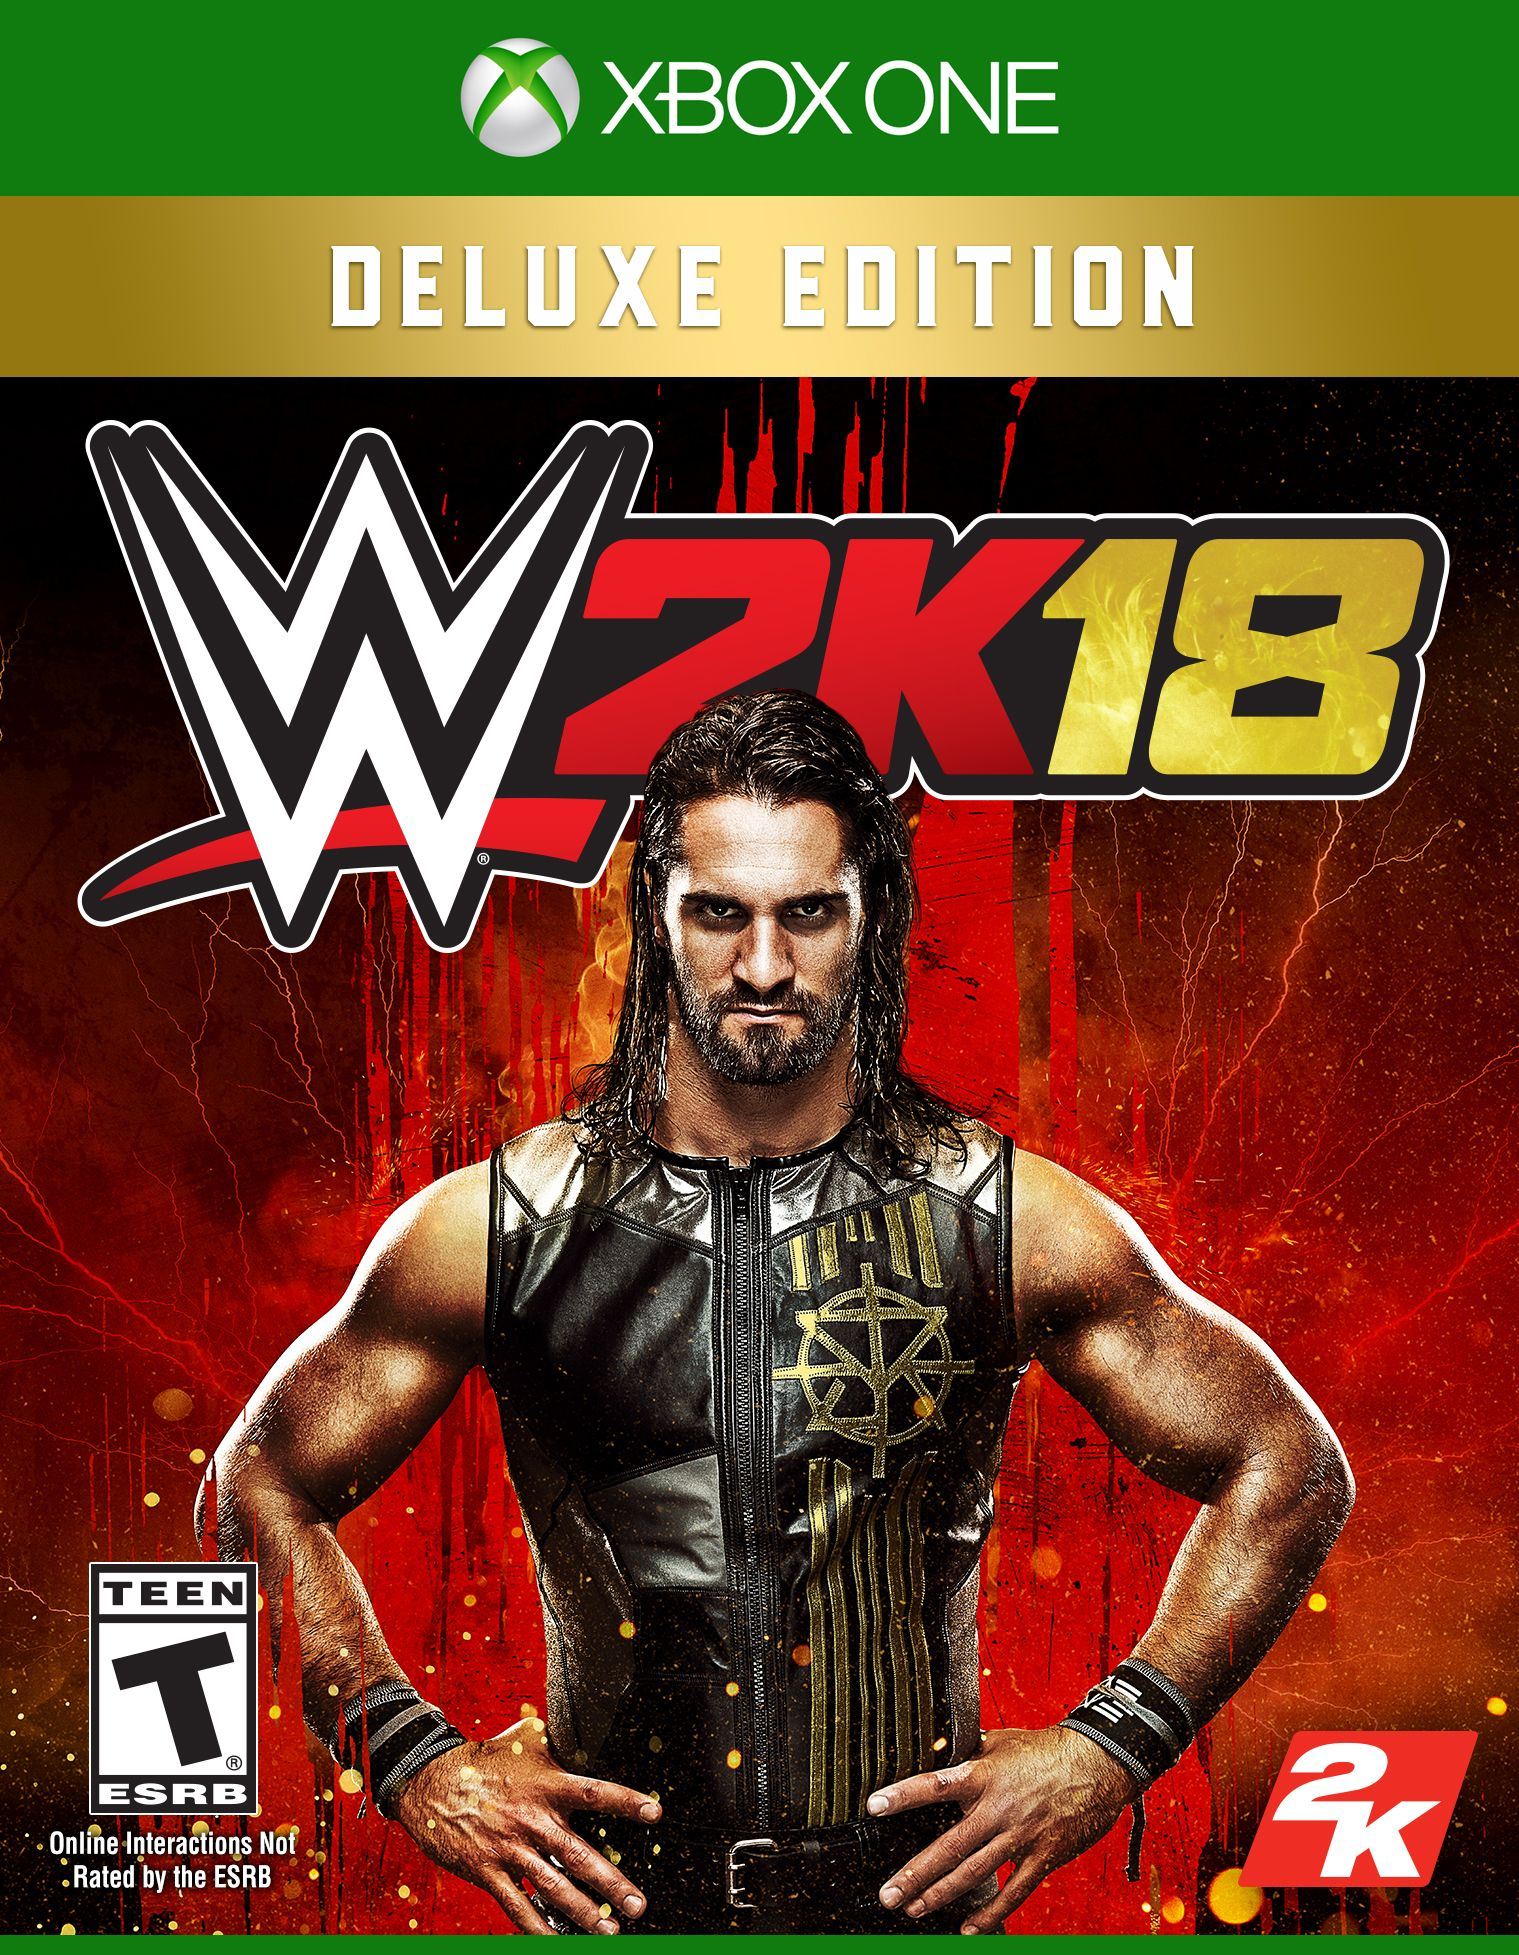 WWE 2K18 Deluxe Edition, 2K, Xbox One, 710425590061 by TAKE 2 INTERACTIVE